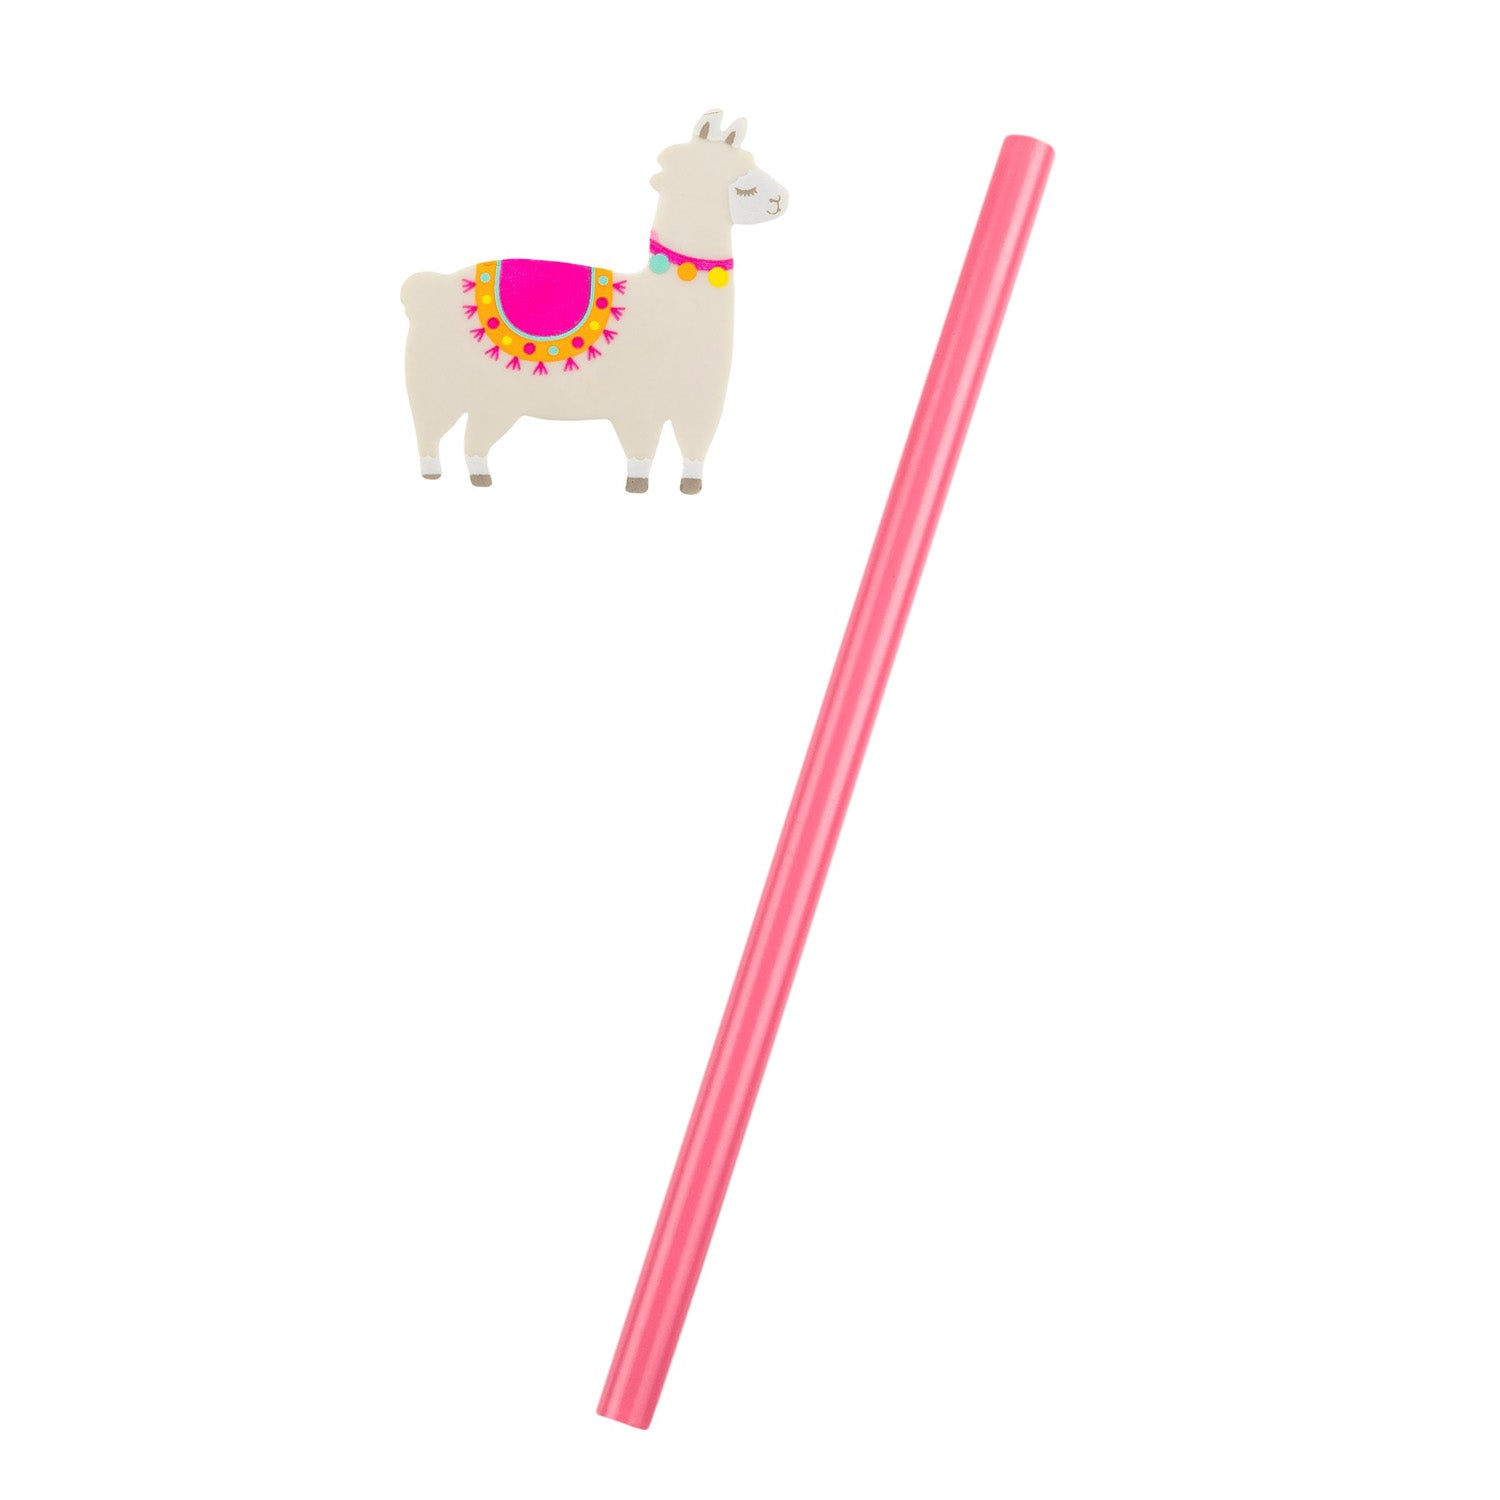 Little Llama Pencil with Eraser Topper - MissieMay